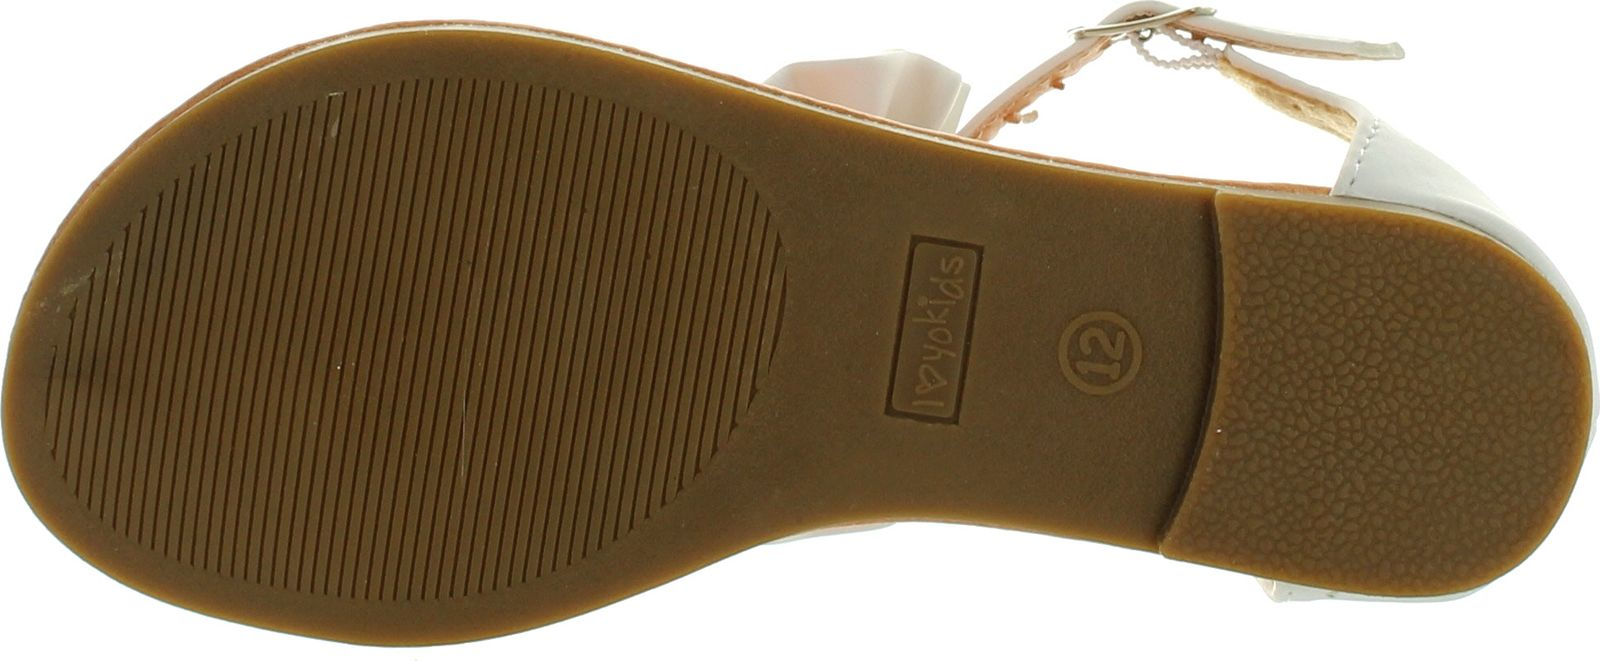 3e5e60576f7 Yokids Amanda-15 Little Girls Flat Thong Sandals with Bow and ...